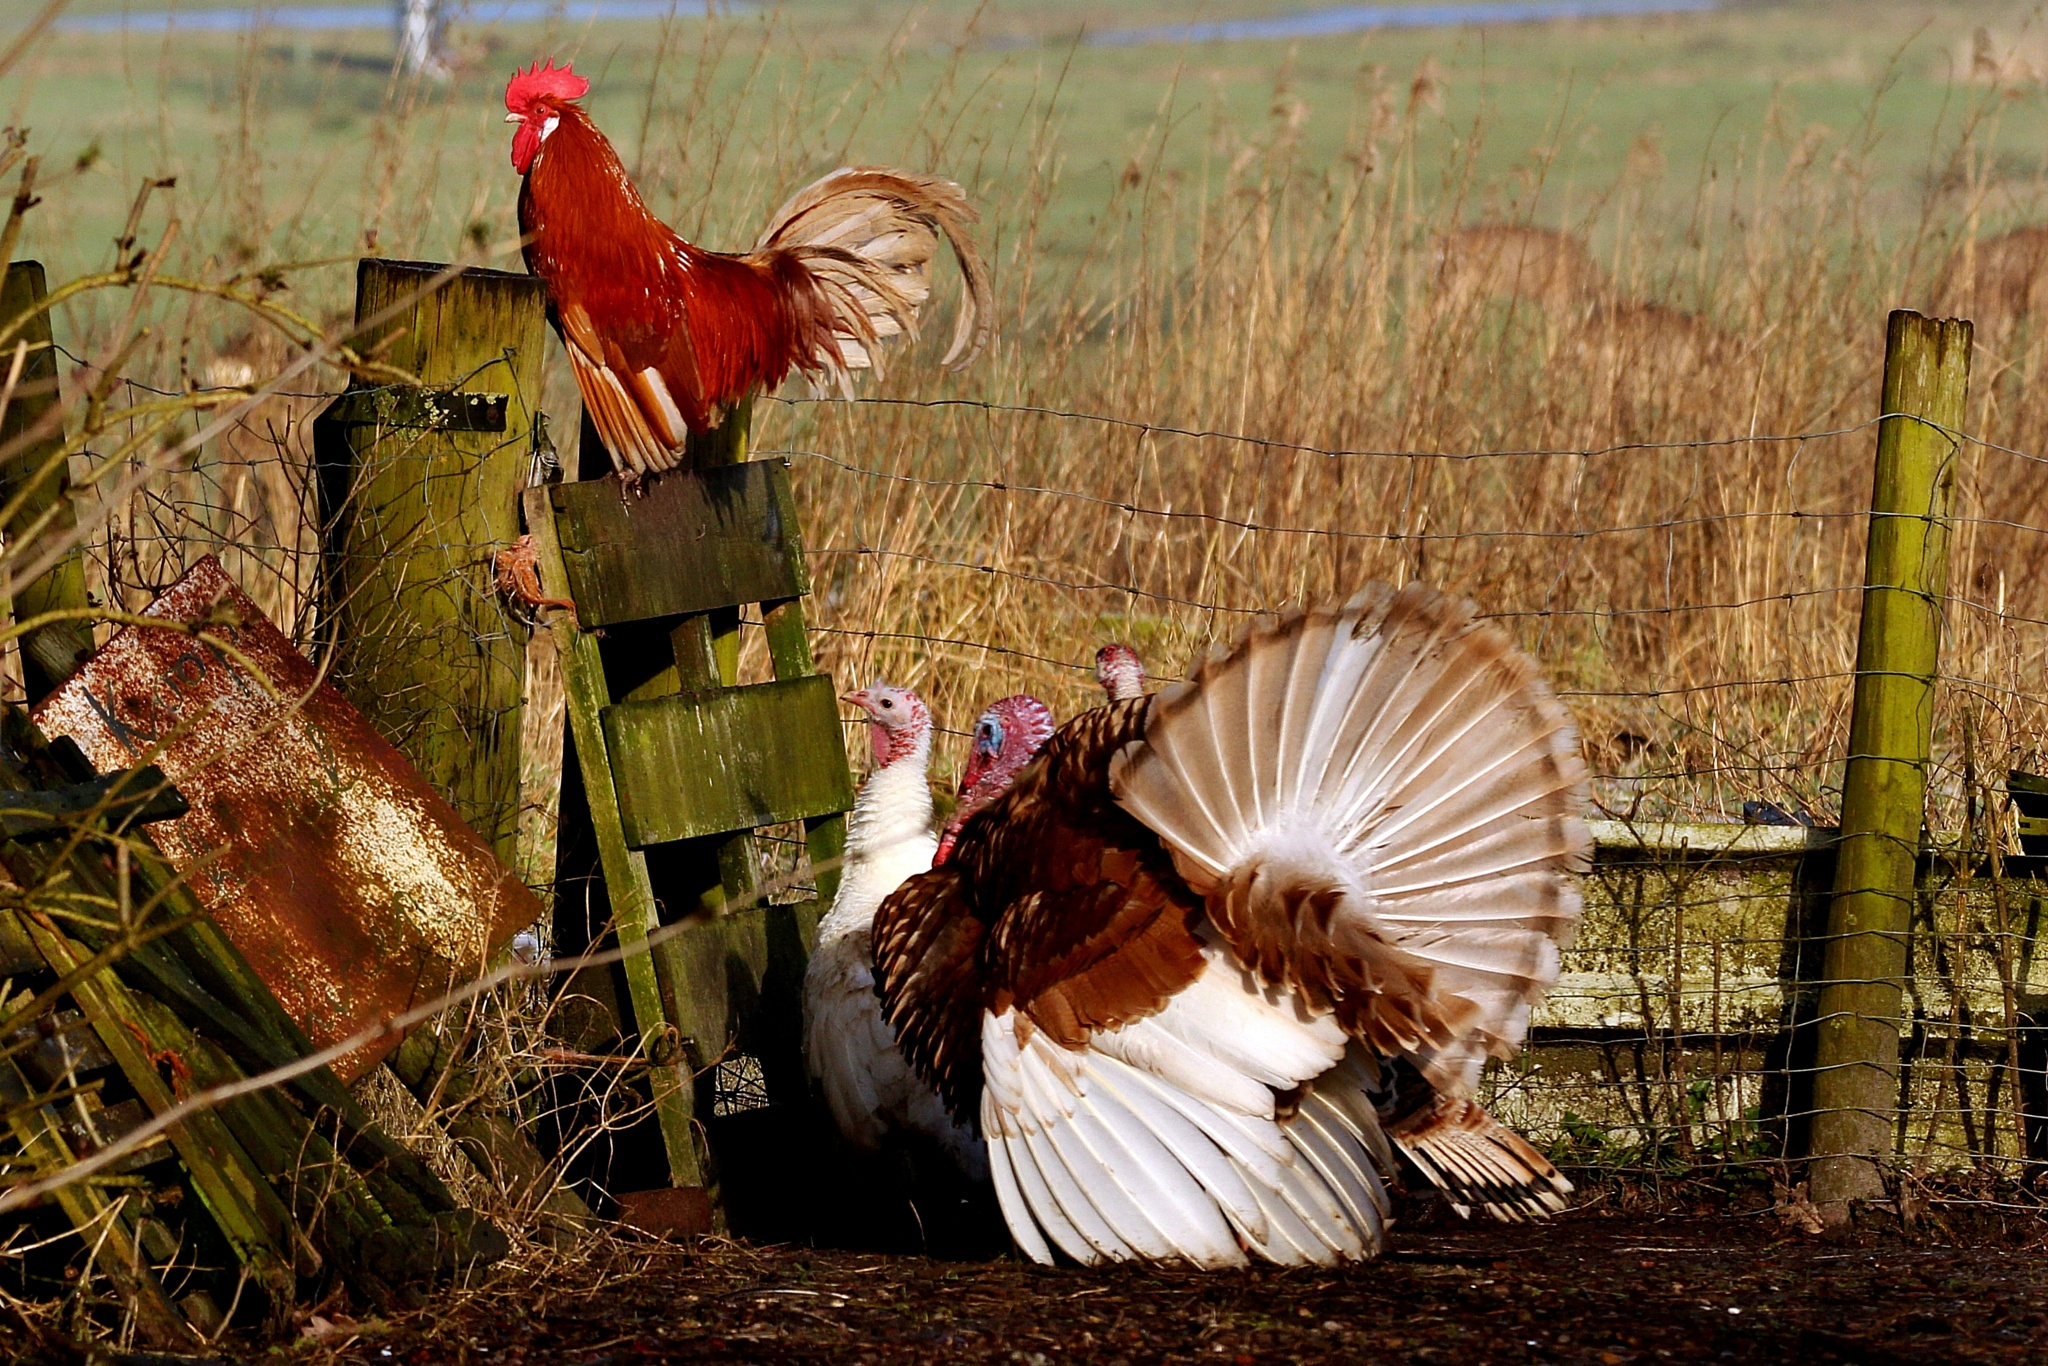 Little red rooster by aafje